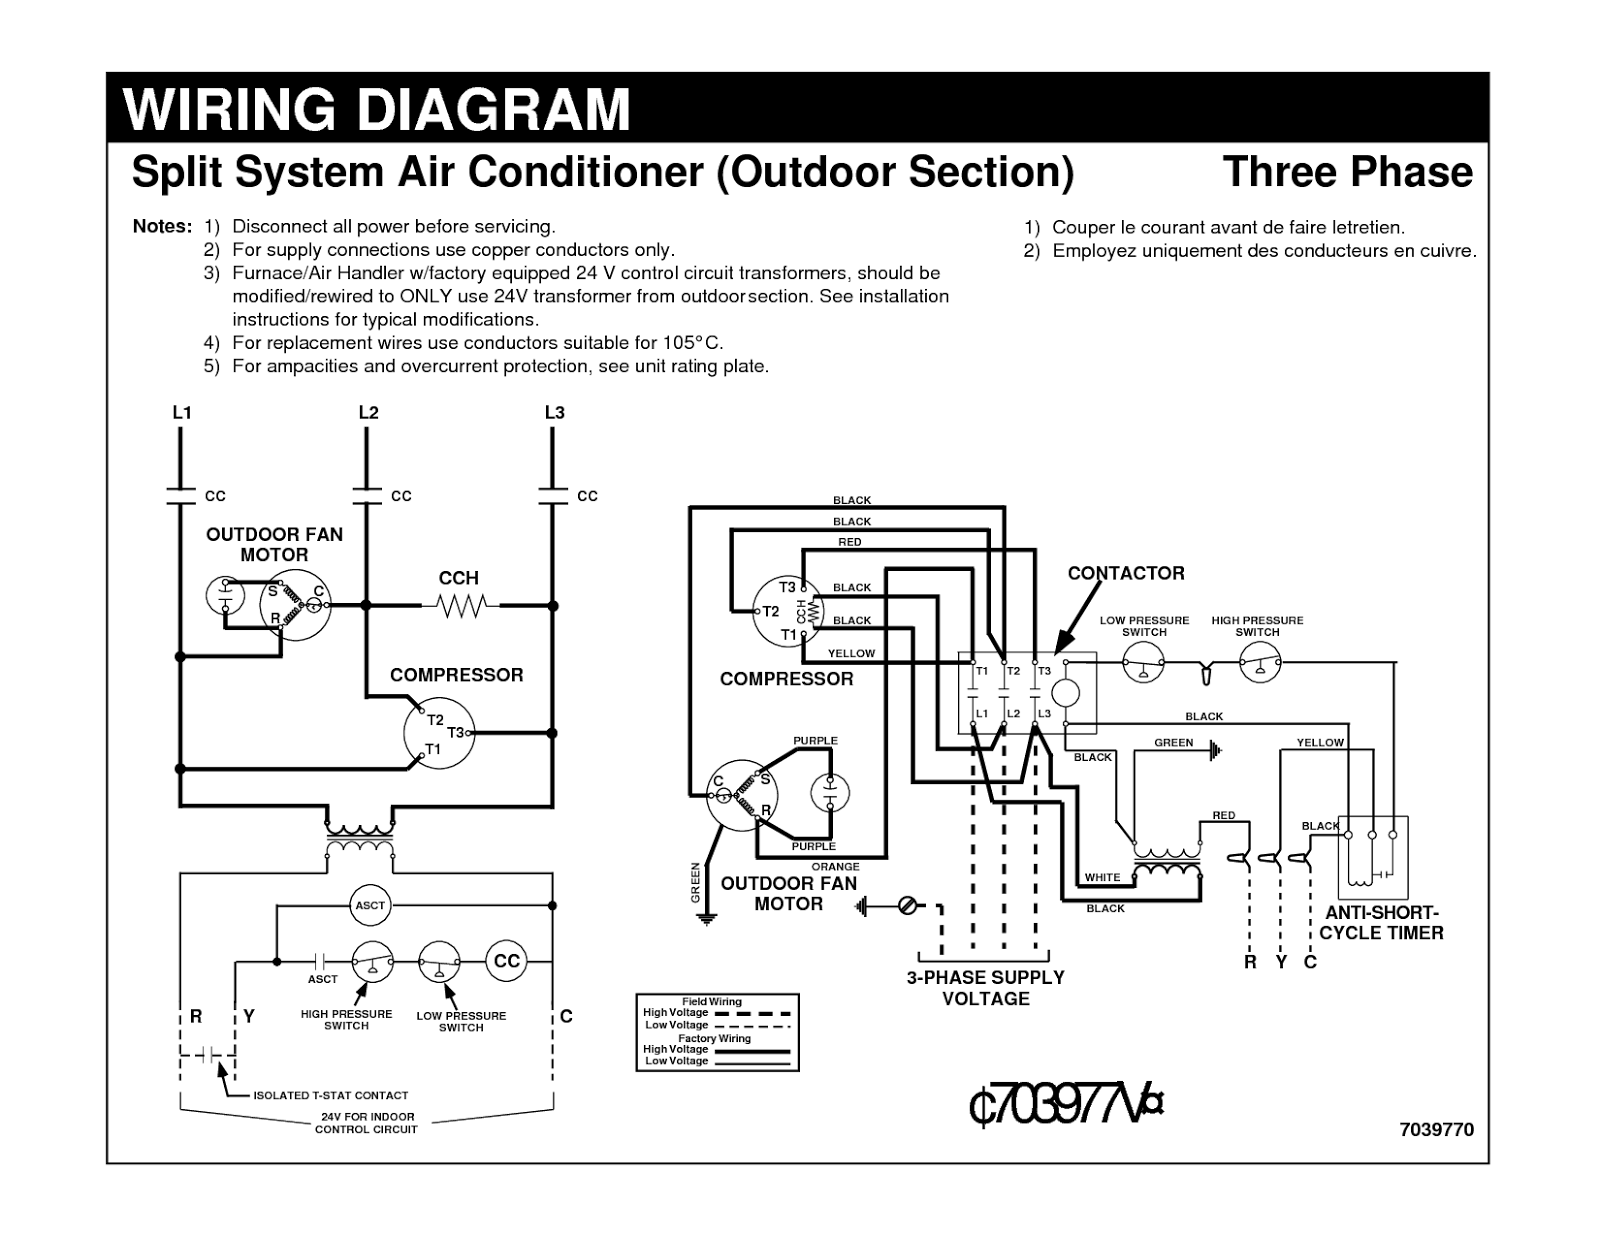 Wiring Diagram Guide - Wiring Diagram Update